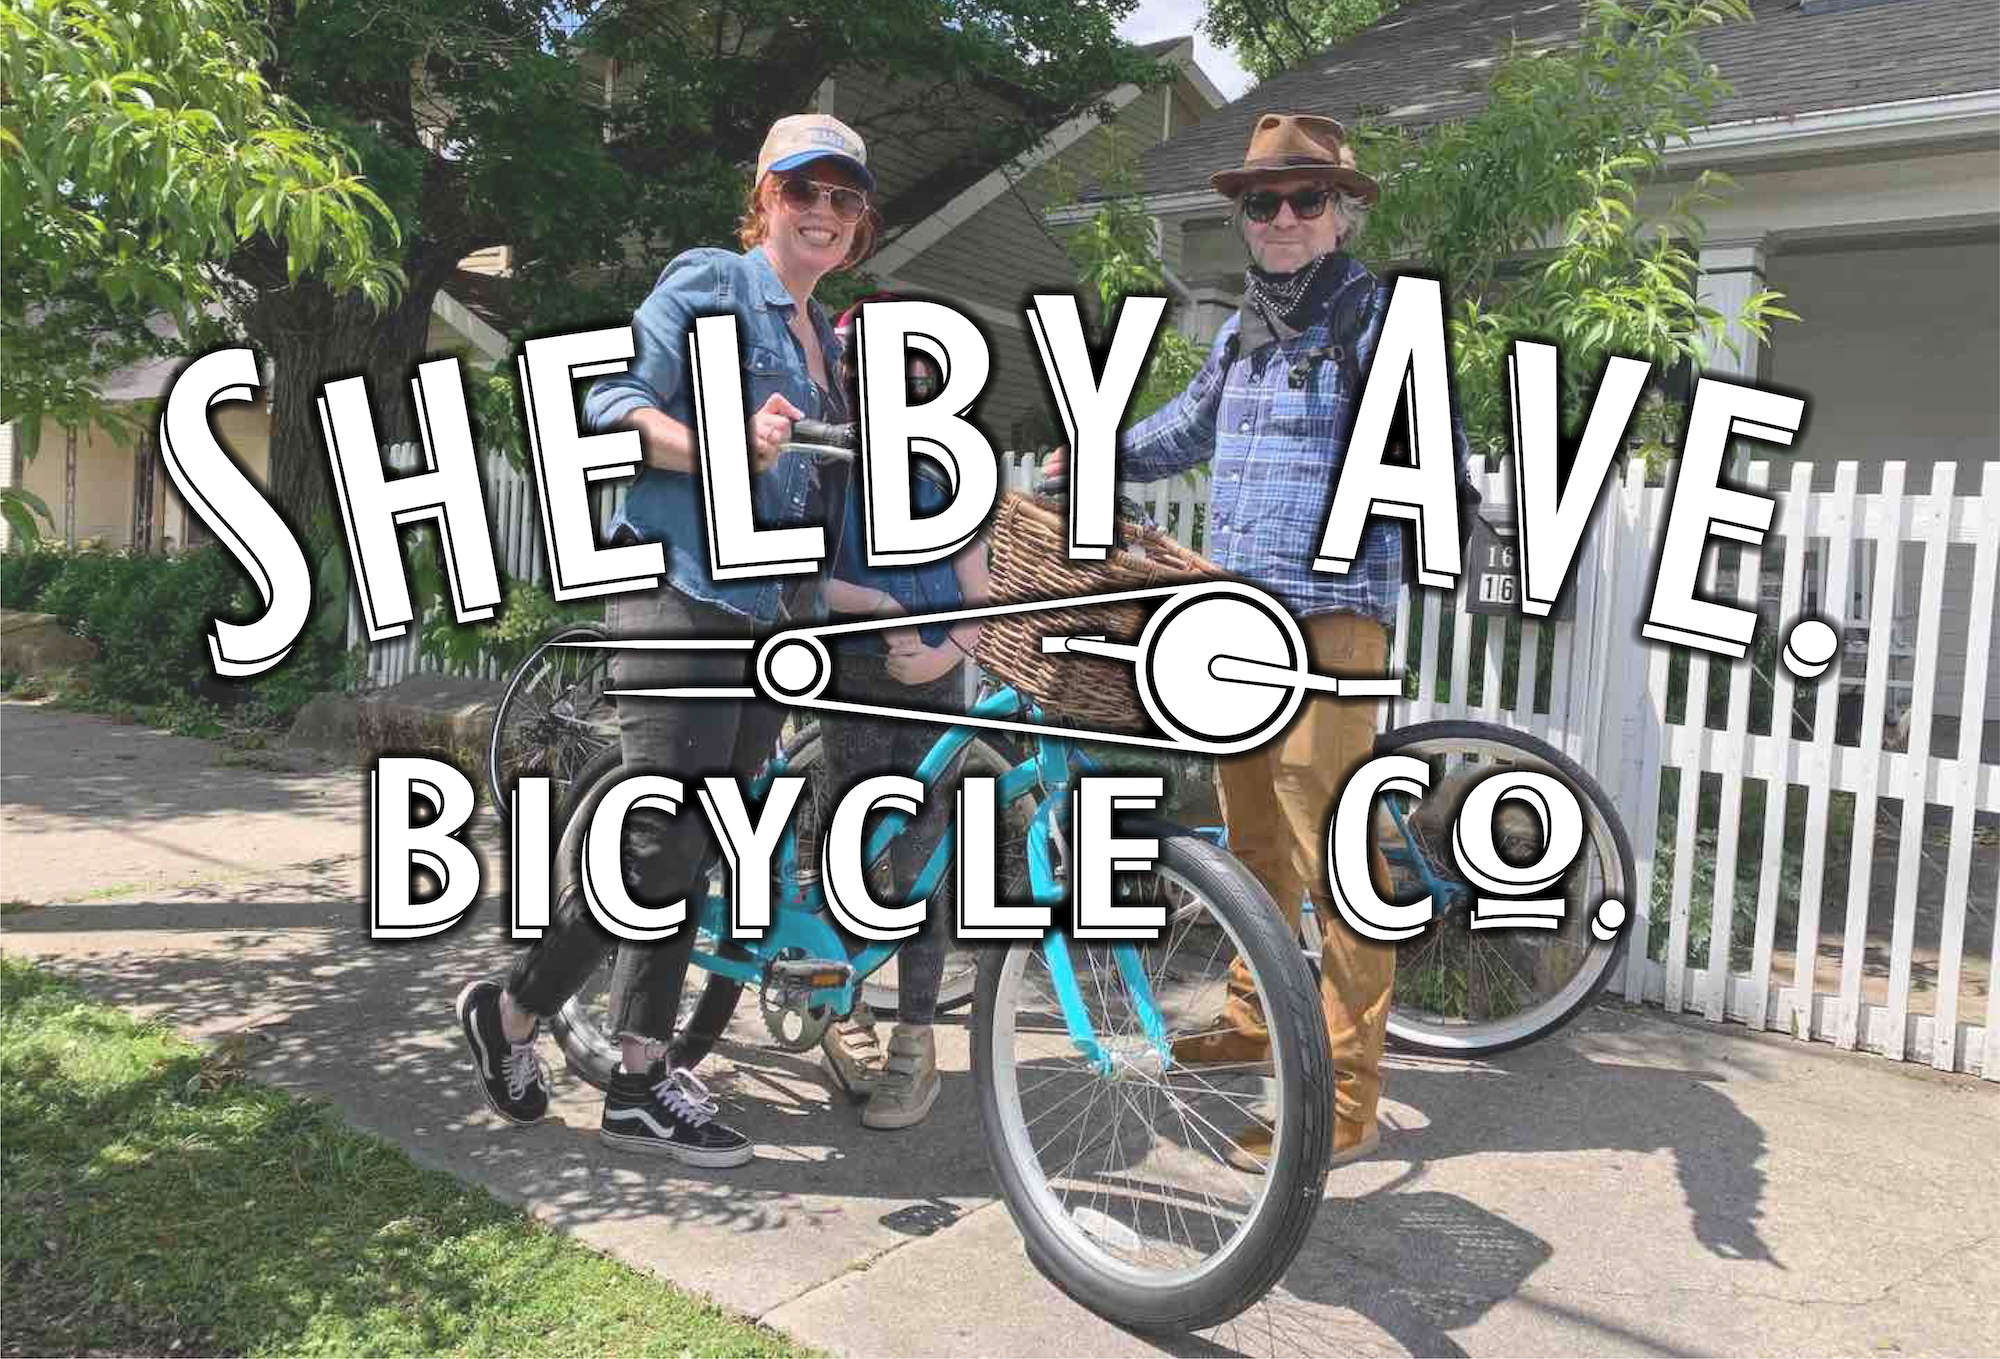 Shelby Ave Bicycle Company pic